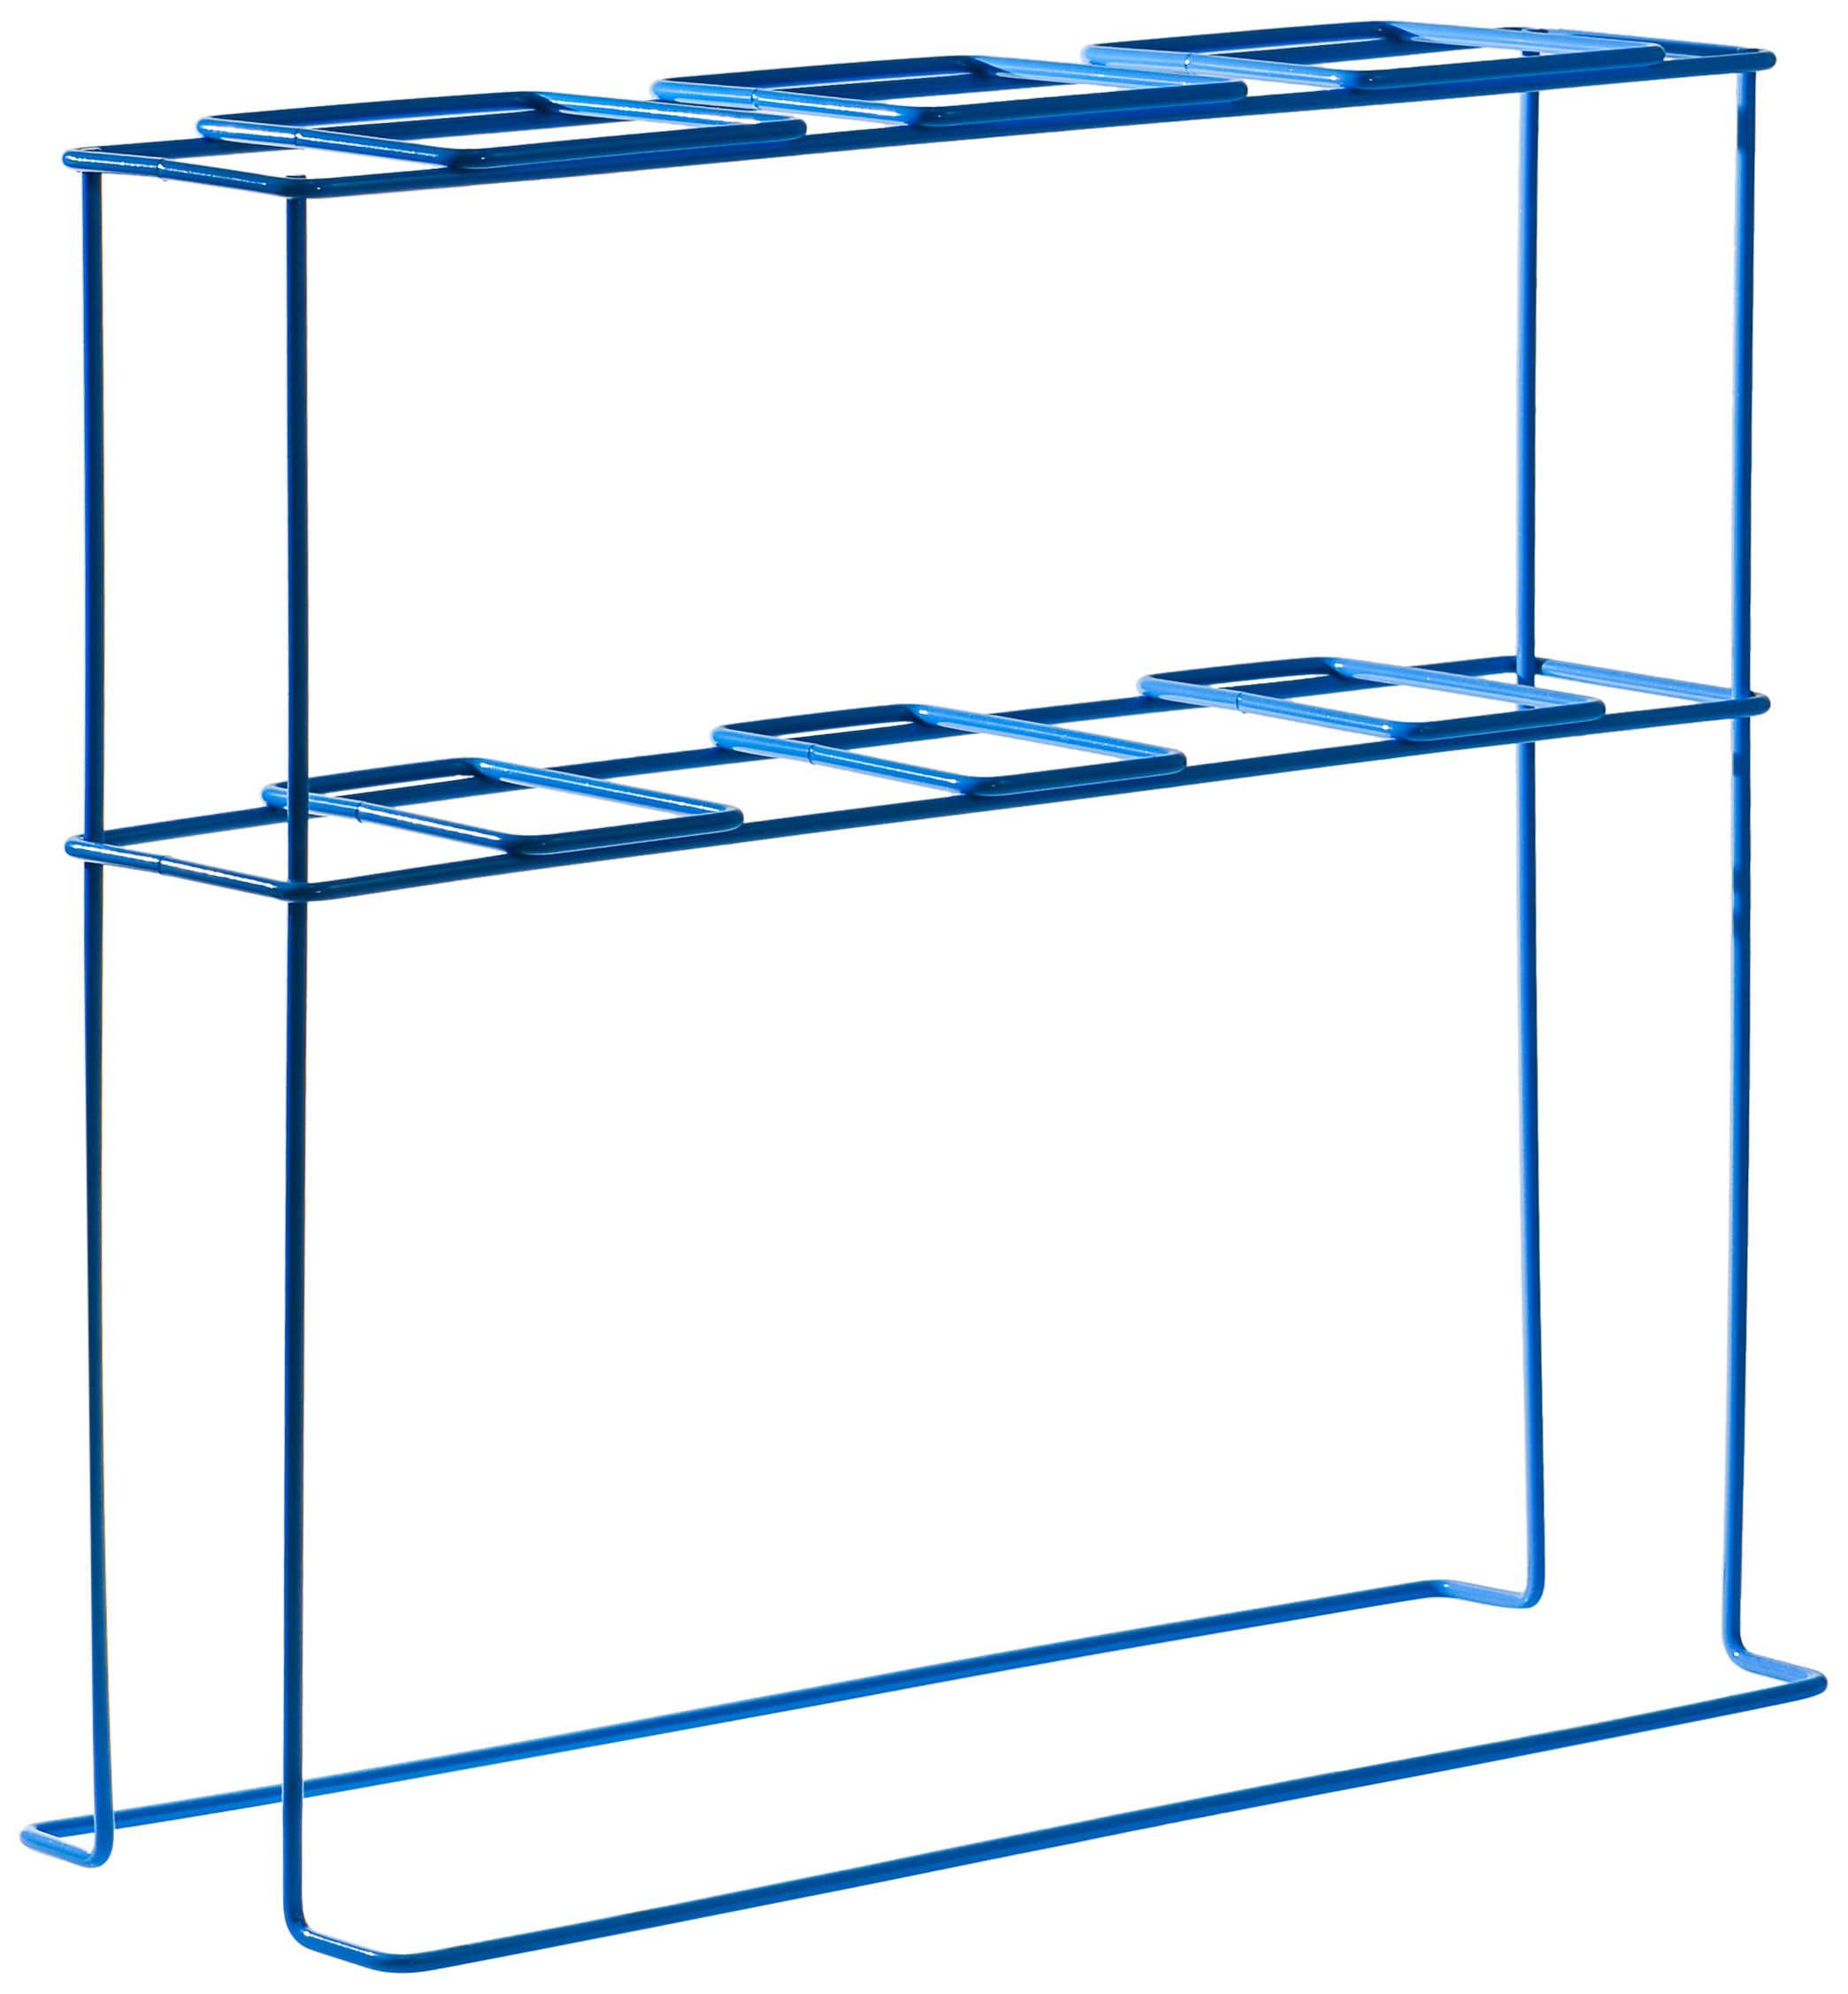 Bel-Art Poxygrid Imhoff Cone Rack; 3 Places, 17¹⁄₂ x 6³⁄₄ x 16 in. (F38993-0003)